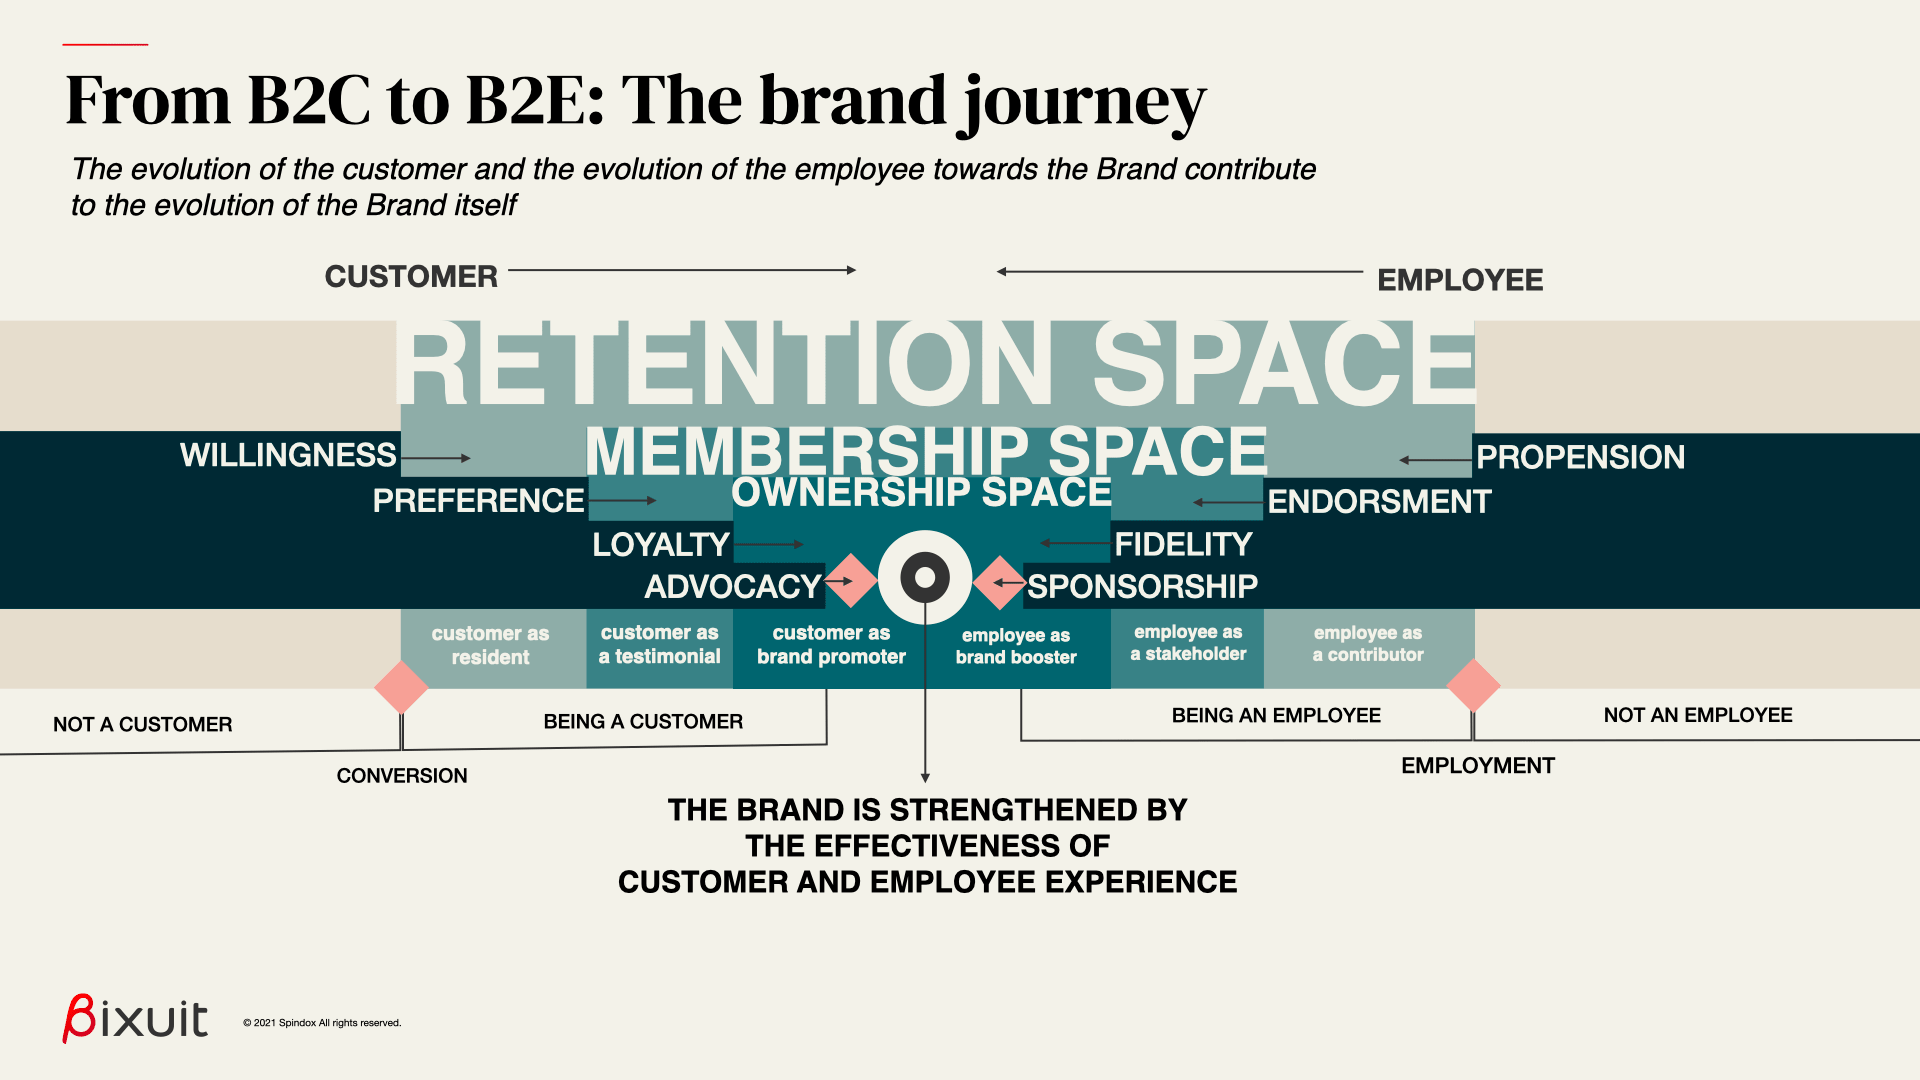 brand journey from both the perspective of consumer and employee